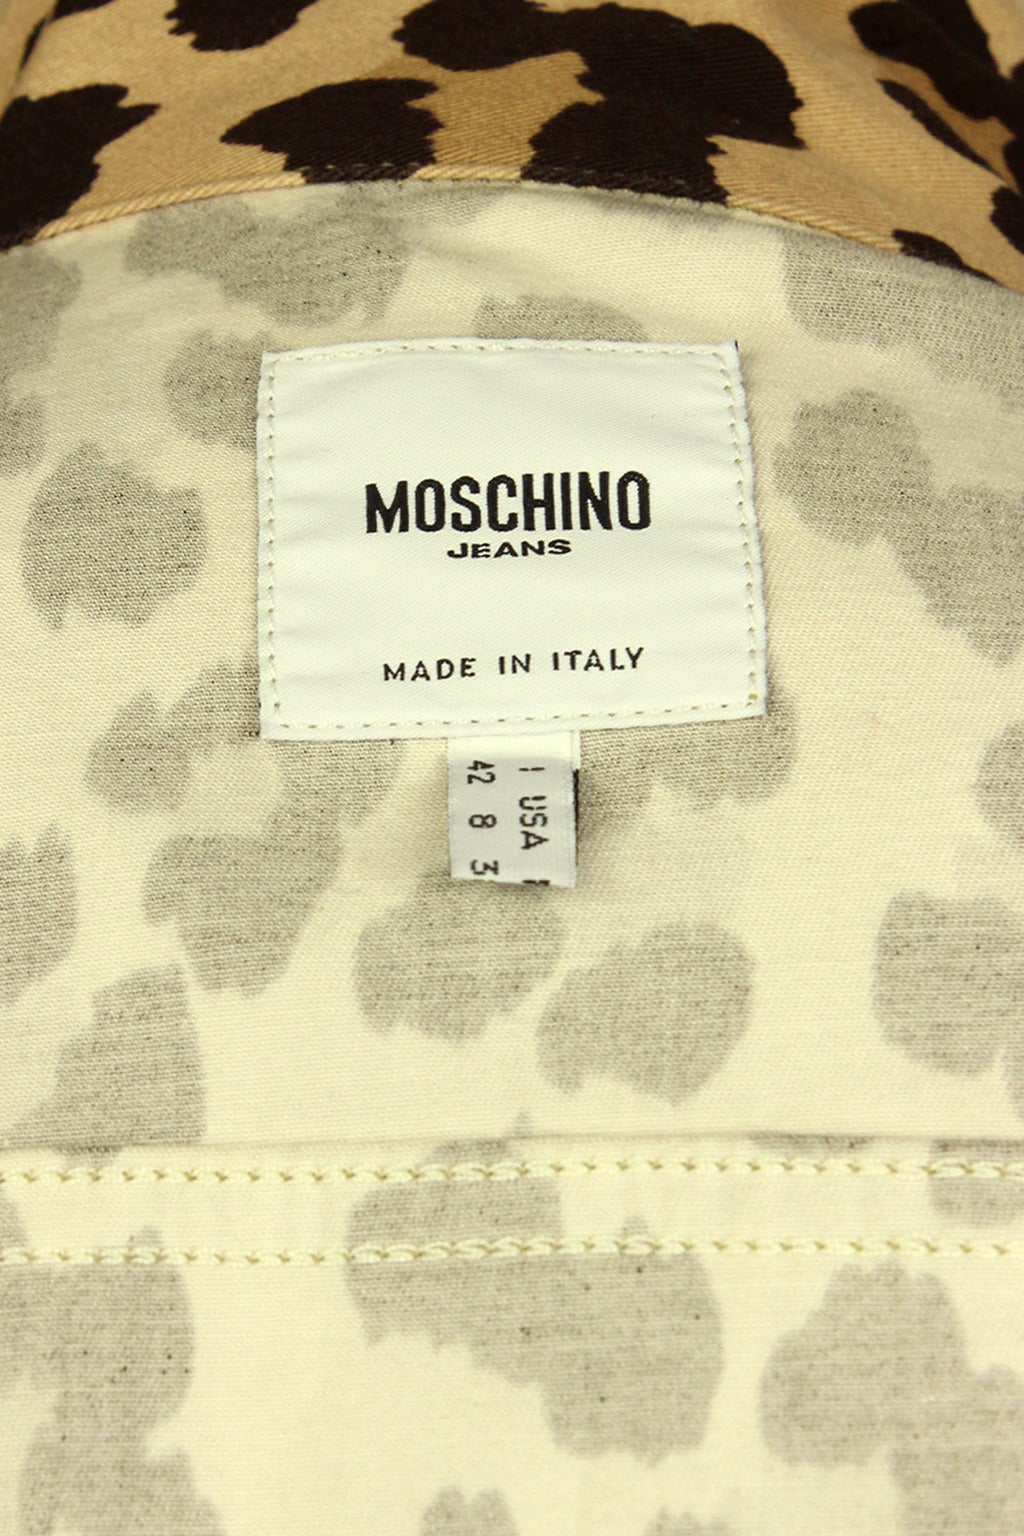 Moschino 1990s Cheetah Print Cropped Western Style Jacket 7